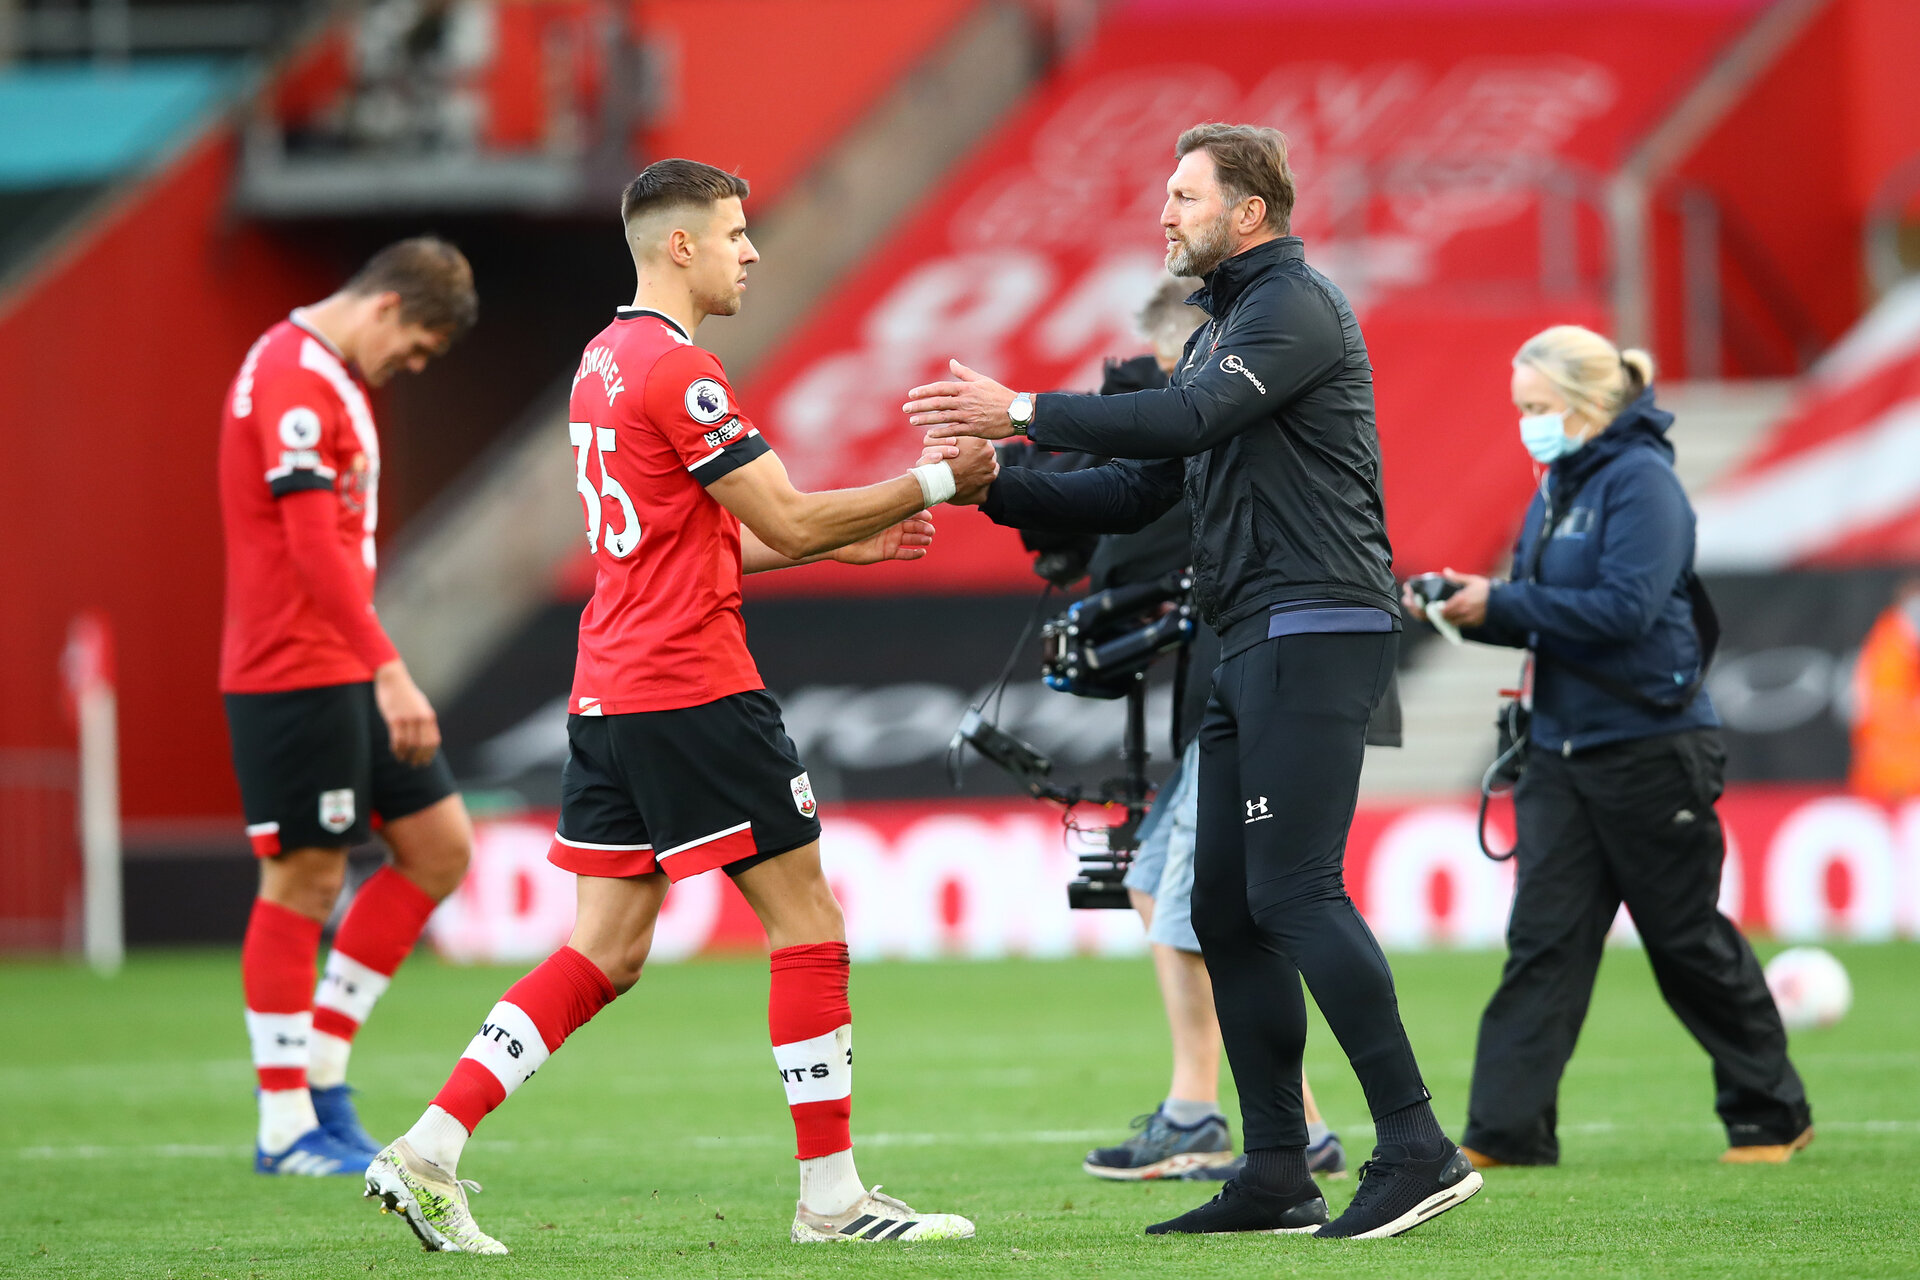 SOUTHAMPTON, ENGLAND - OCTOBER 25: Jan Bednarek(L) and Ralph Hasenhuttl(R) of Southampton during the Premier League match between Southampton and Everton at St Mary's Stadium on October 25, 2020 in Southampton, England. Sporting stadiums around the UK remain under strict restrictions due to the Coronavirus Pandemic as Government social distancing laws prohibit fans inside venues resulting in games being played behind closed doors. (Photo by Matt Watson/Southampton FC via Getty Images)